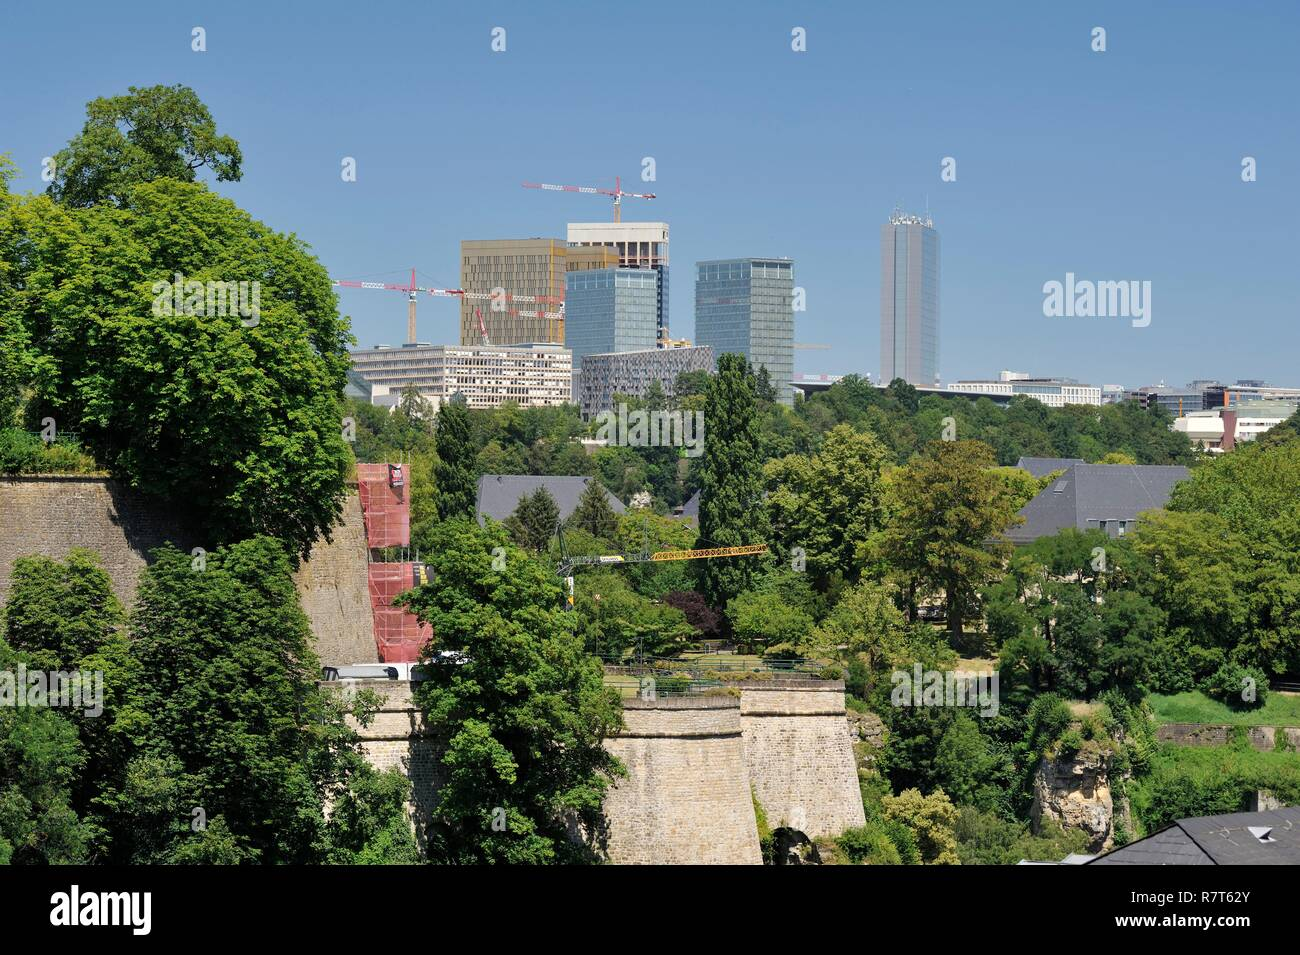 Luxembourg, Luxembourg city, view of the Kirchberg plateau neighborhood housing the Museum of Modern Art and the buildings of the European institutions - Stock Image